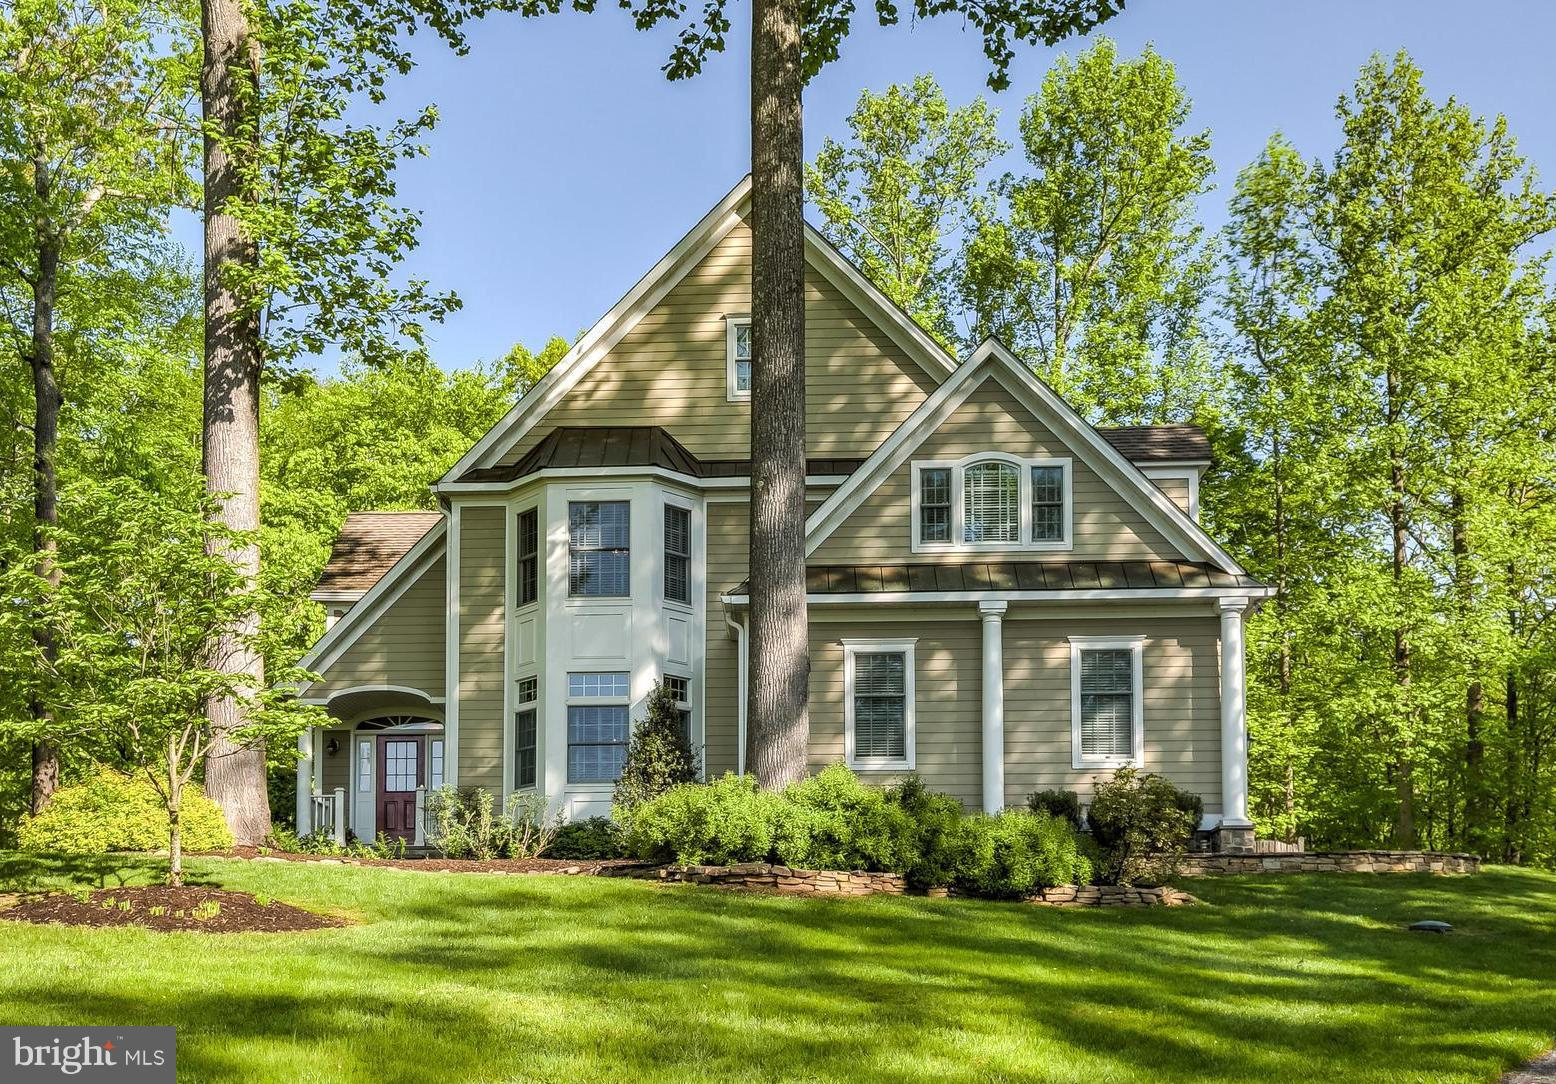 1500 MAGERS LANDING ROAD, MONKTON, MD 21111